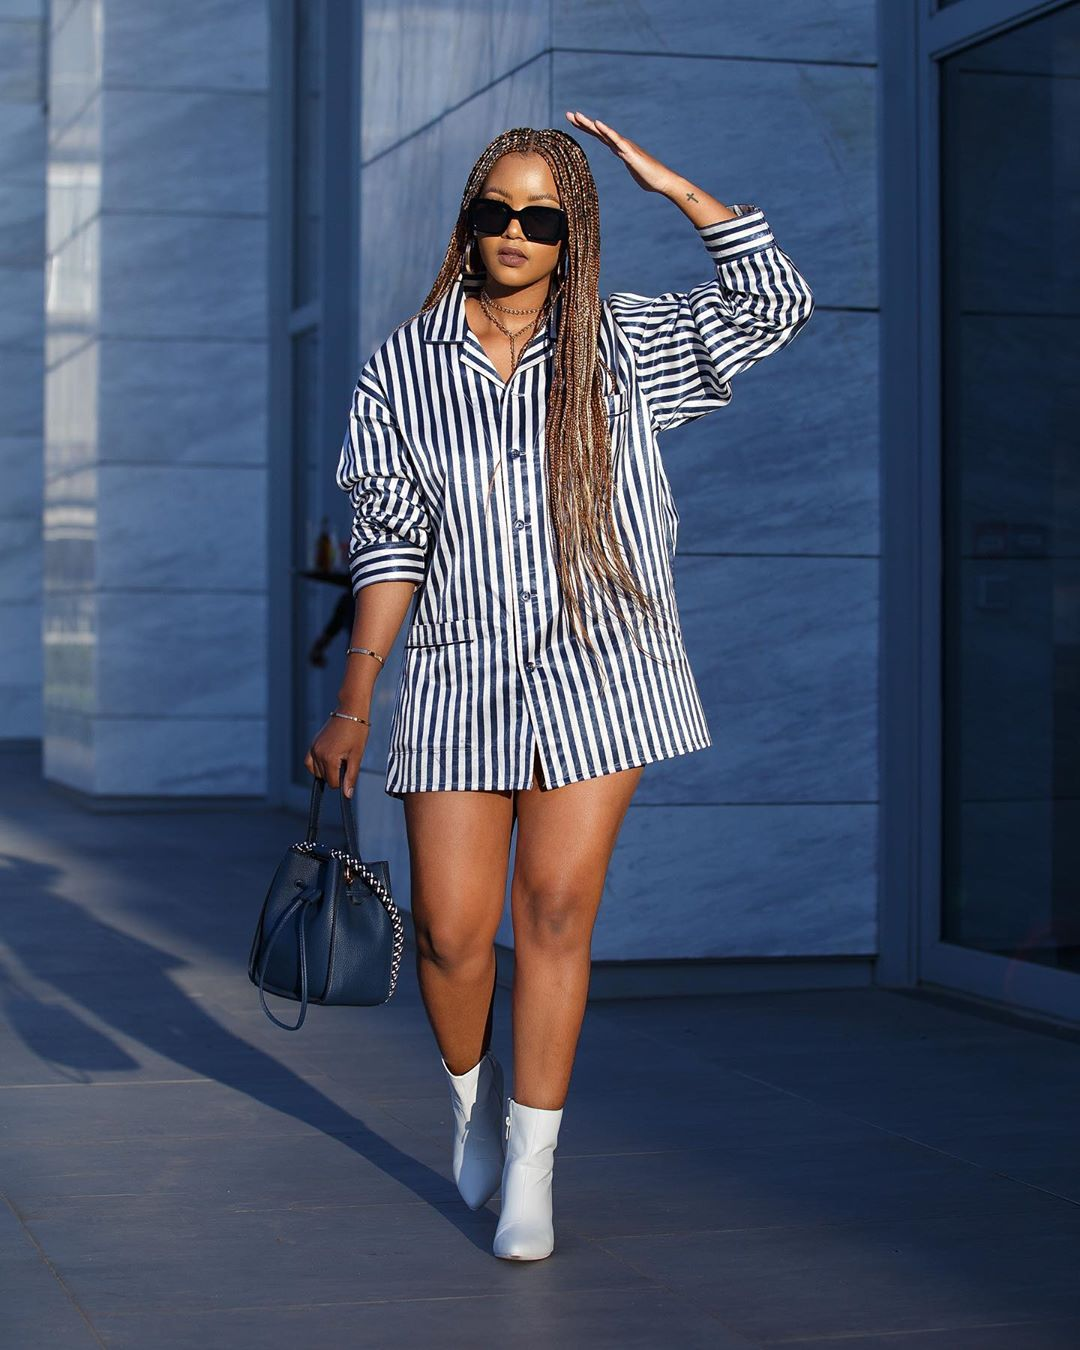 seenqo-southafrican-celeb-style-south-african-celebrity